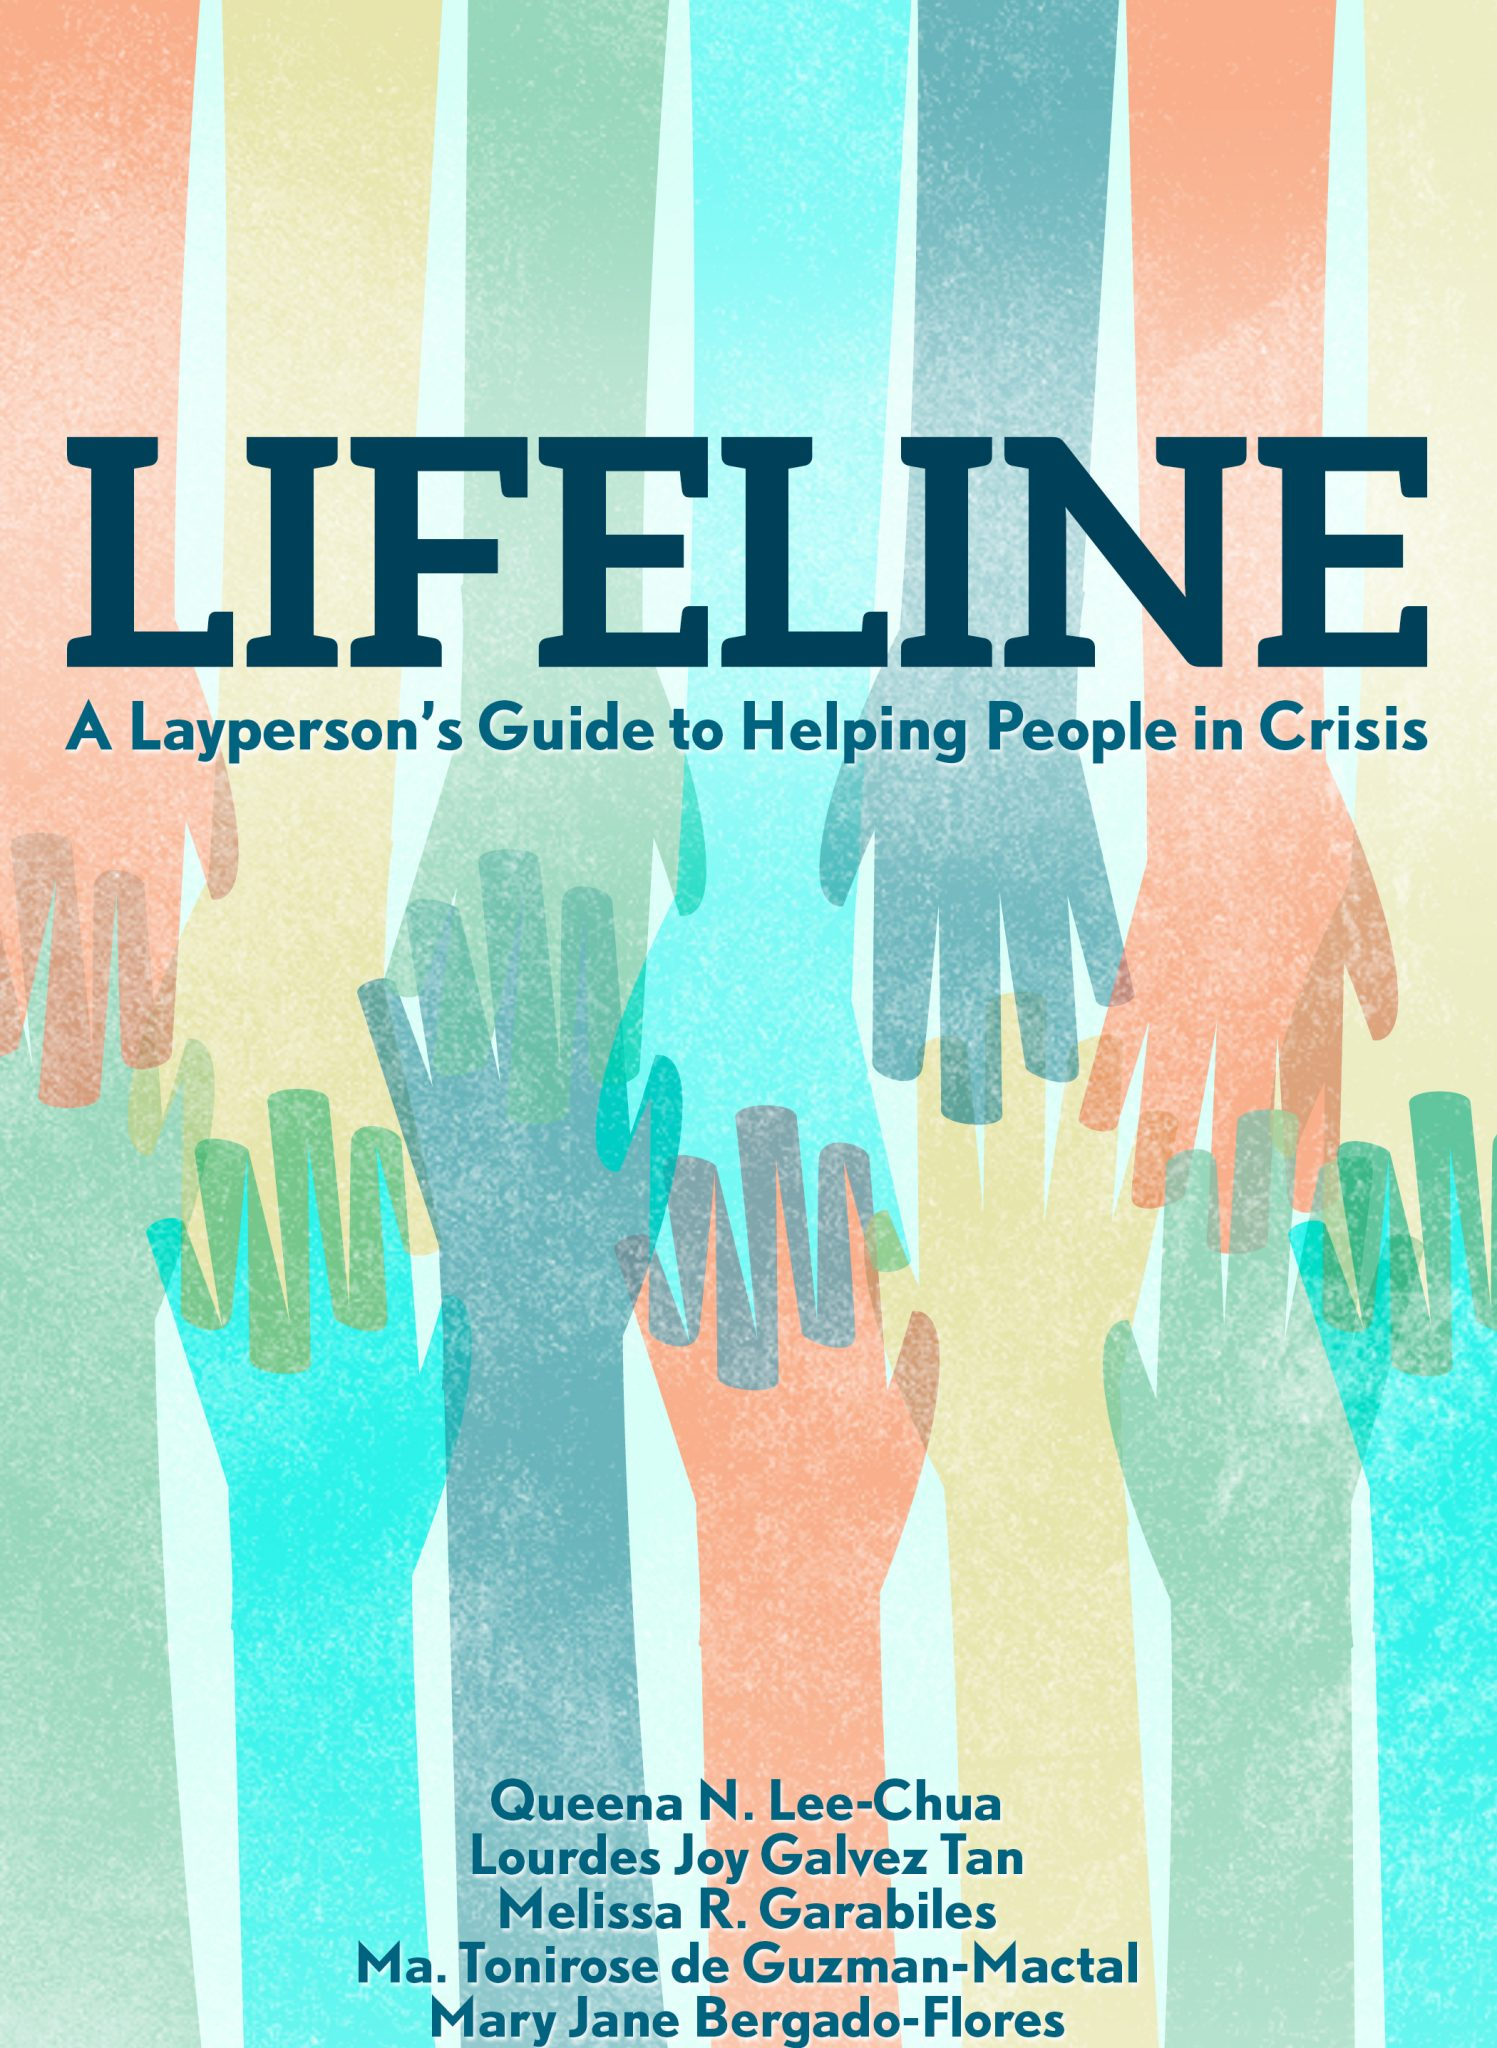 Lifeline: A Layperson's Guide to Helping People in Crisis